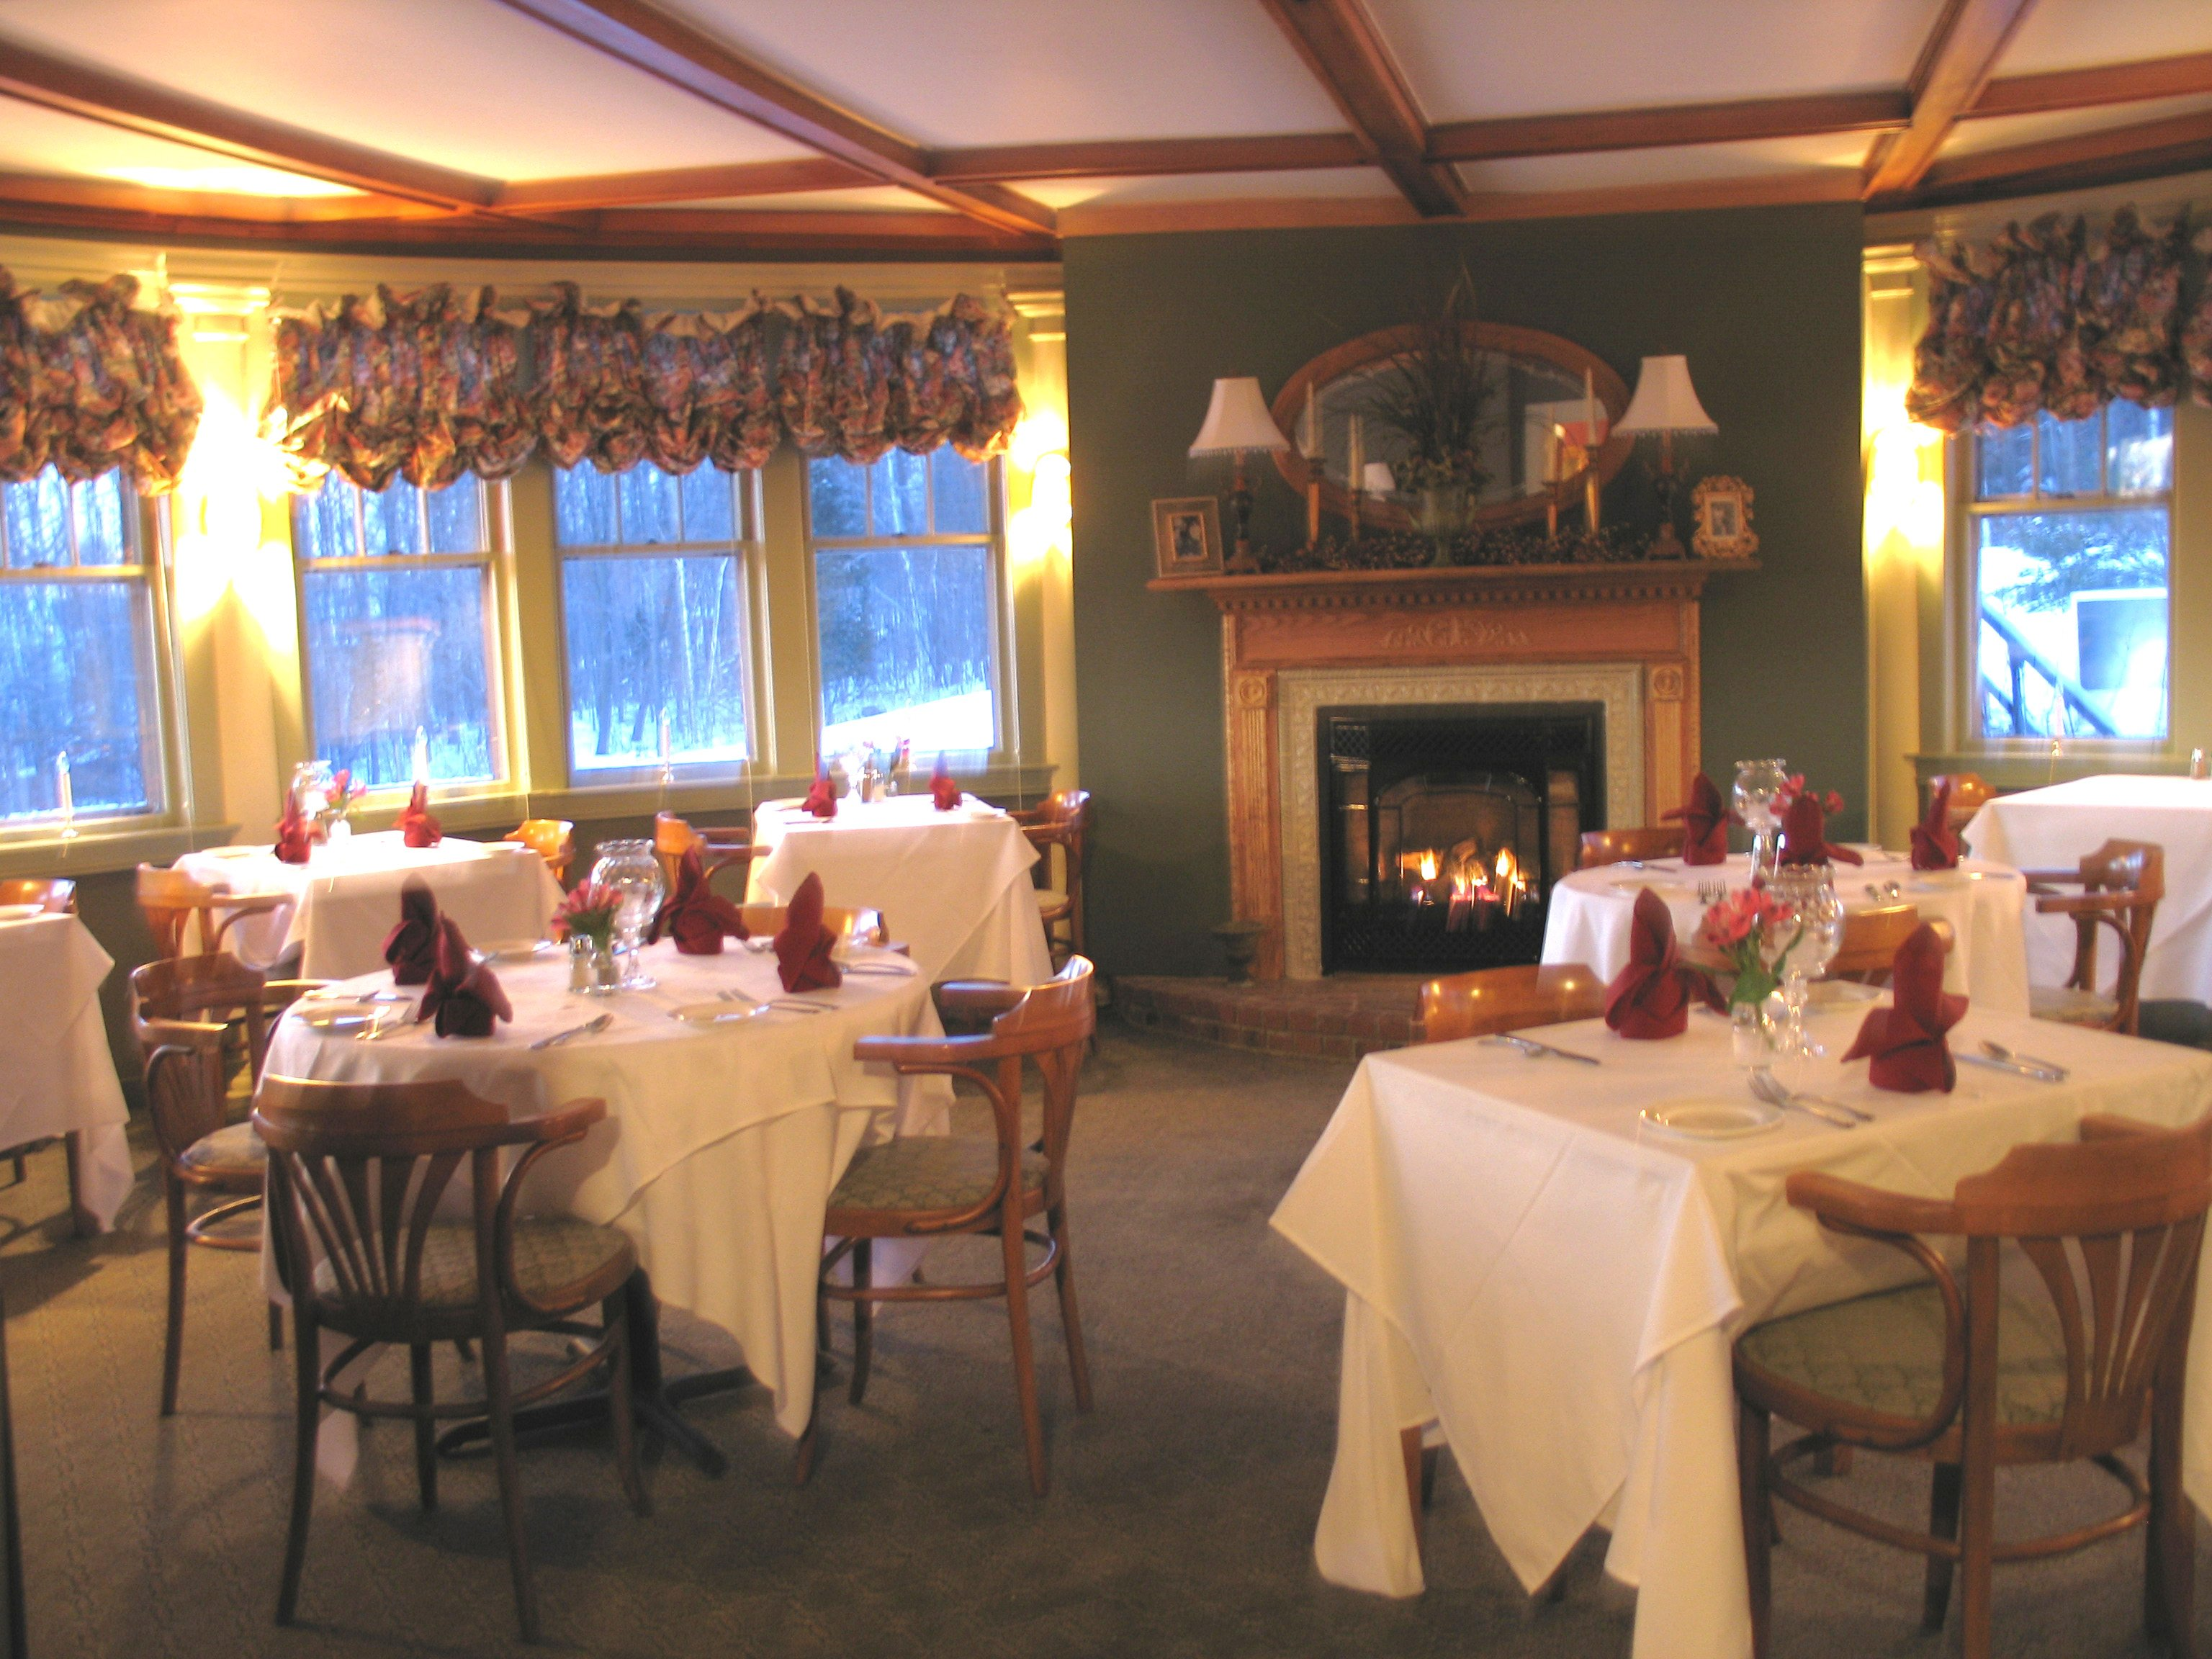 Exceptional cuisine, serene atmosphere and awe-inspiring views at The Greenville Inn